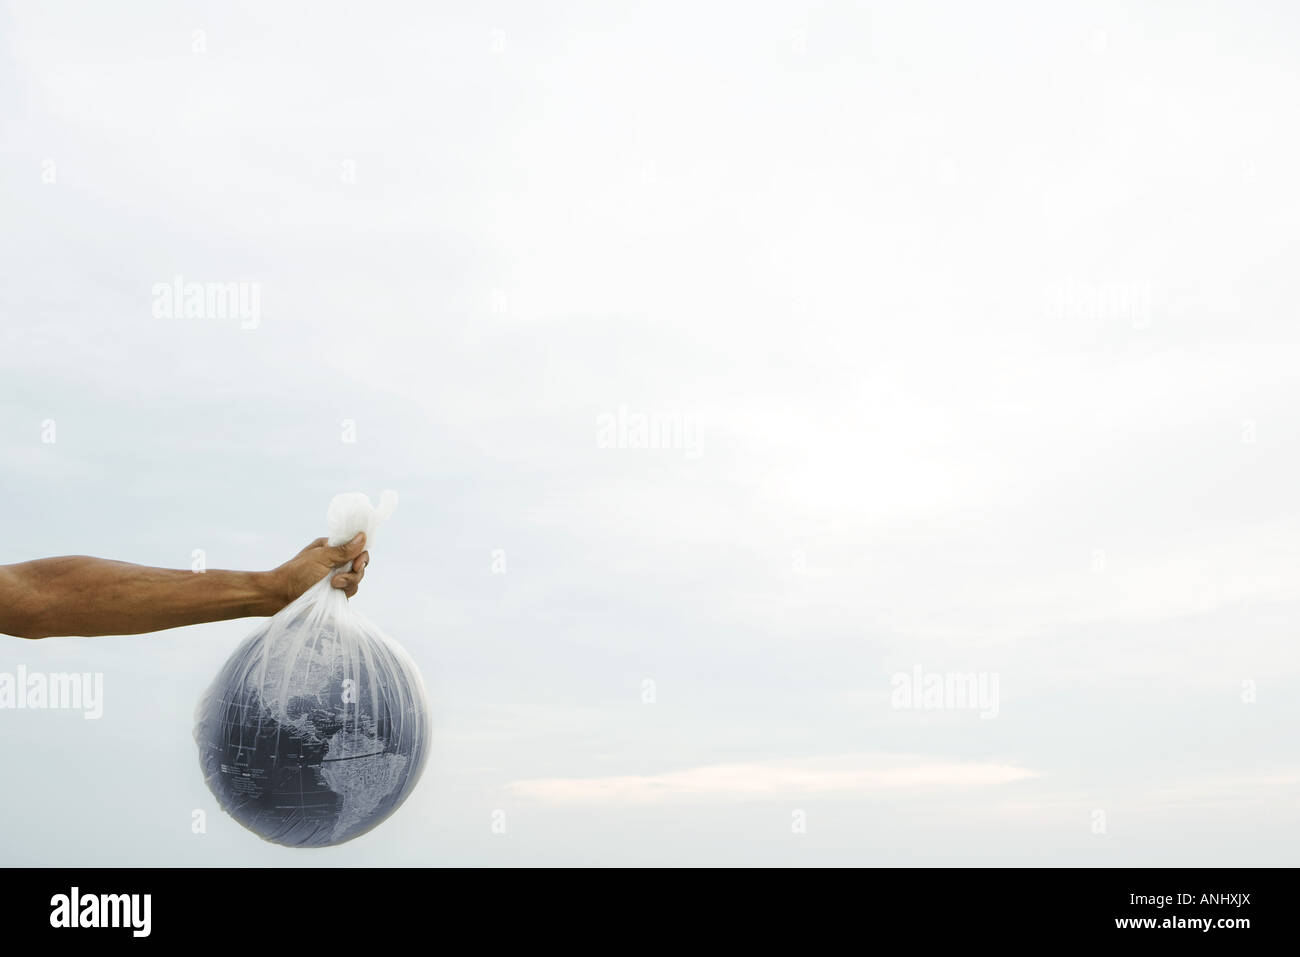 Man holding globe in plastic bag, cropped view - Stock Image